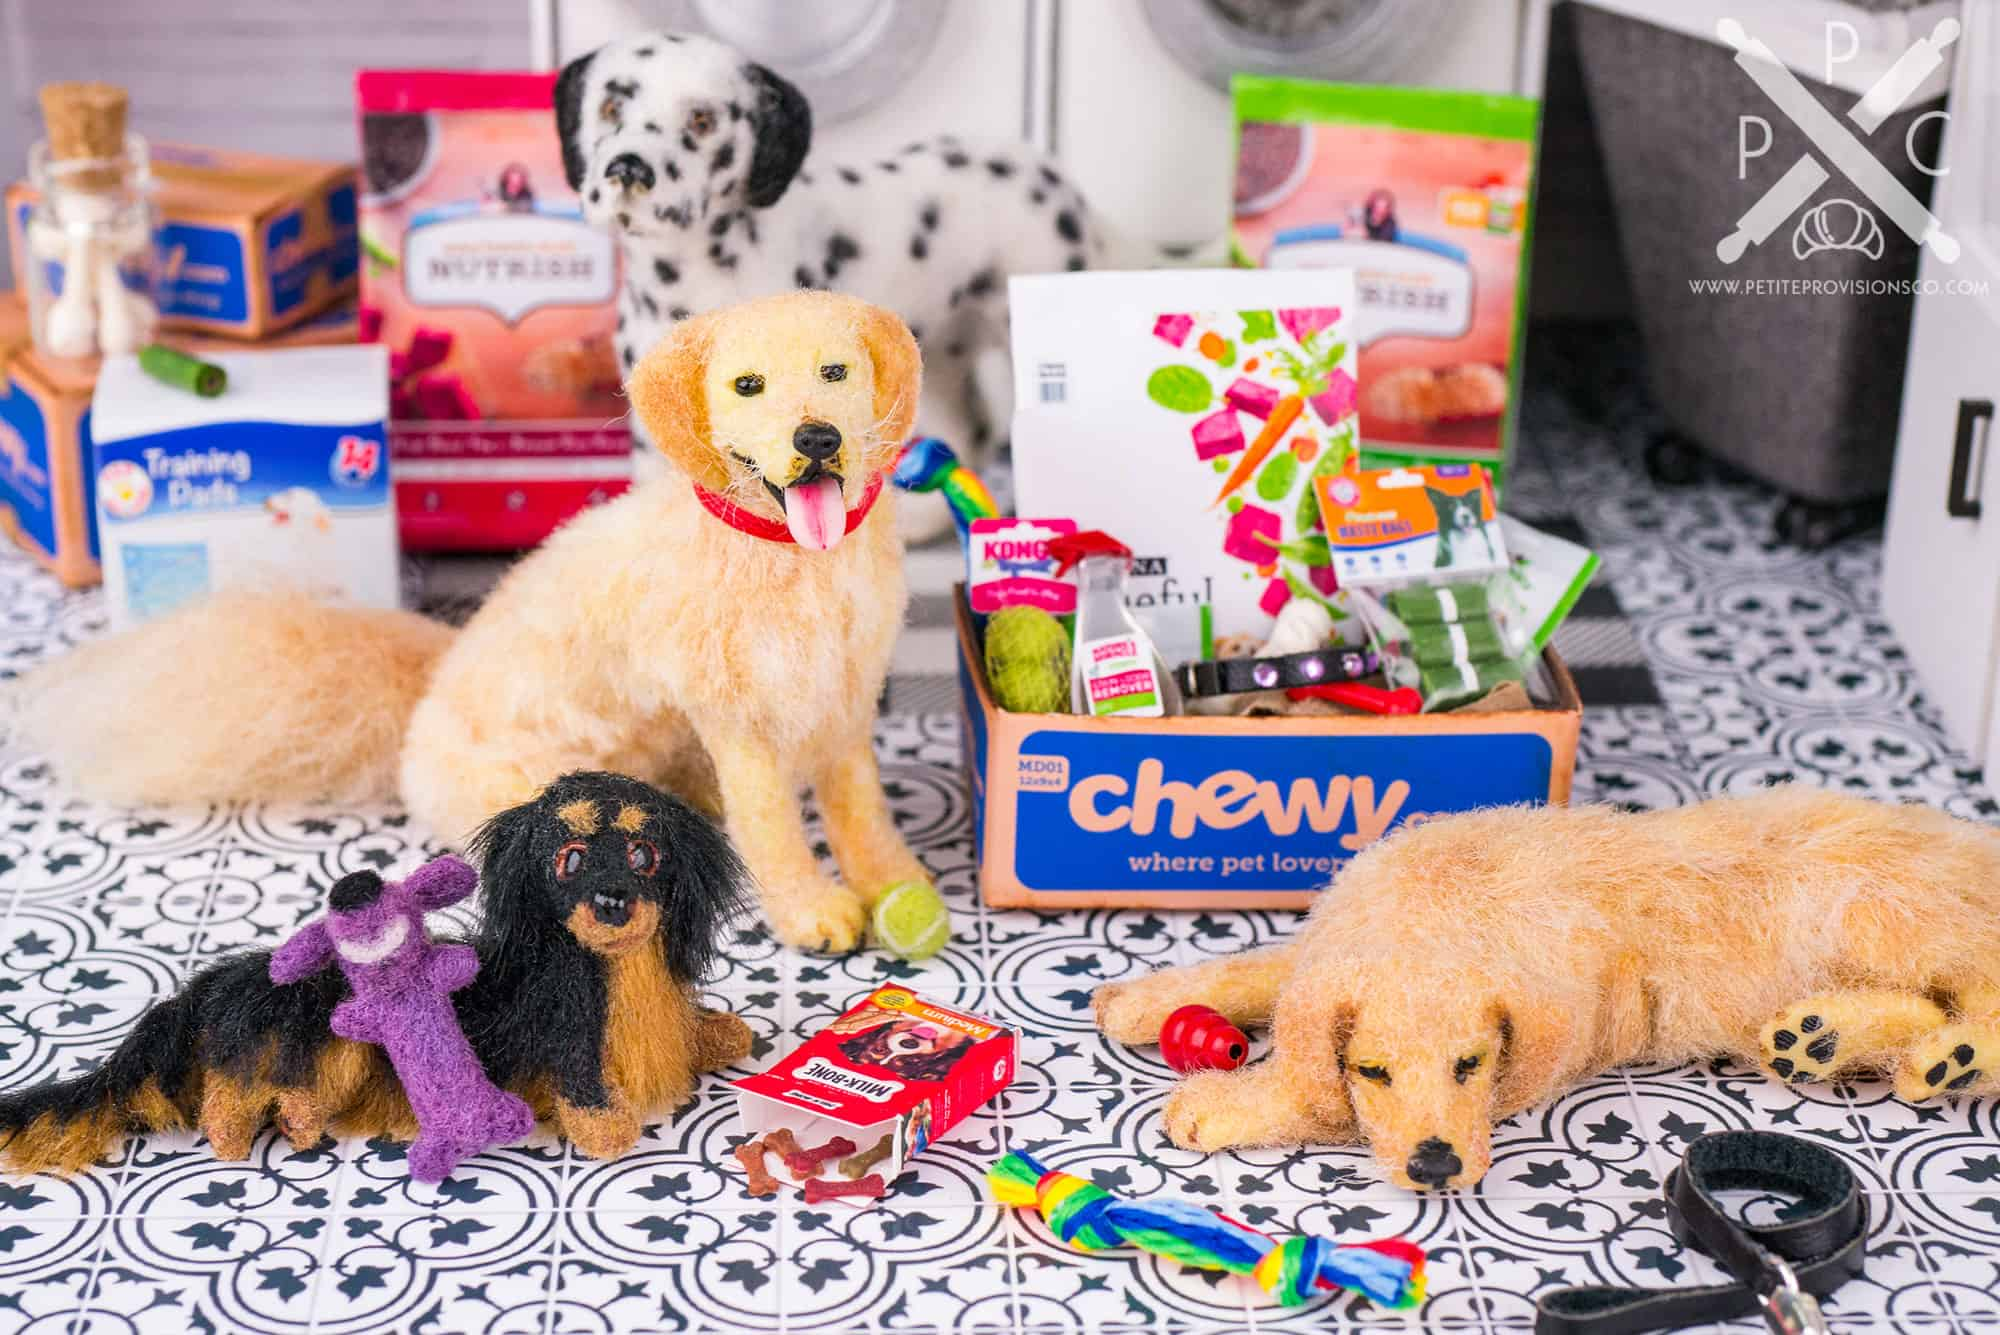 Dollhouse miniature dogs with shipping boxes of toys and food from Chewy in a one inch scale scene by Erika Pitera, The Petite Provisions Co.